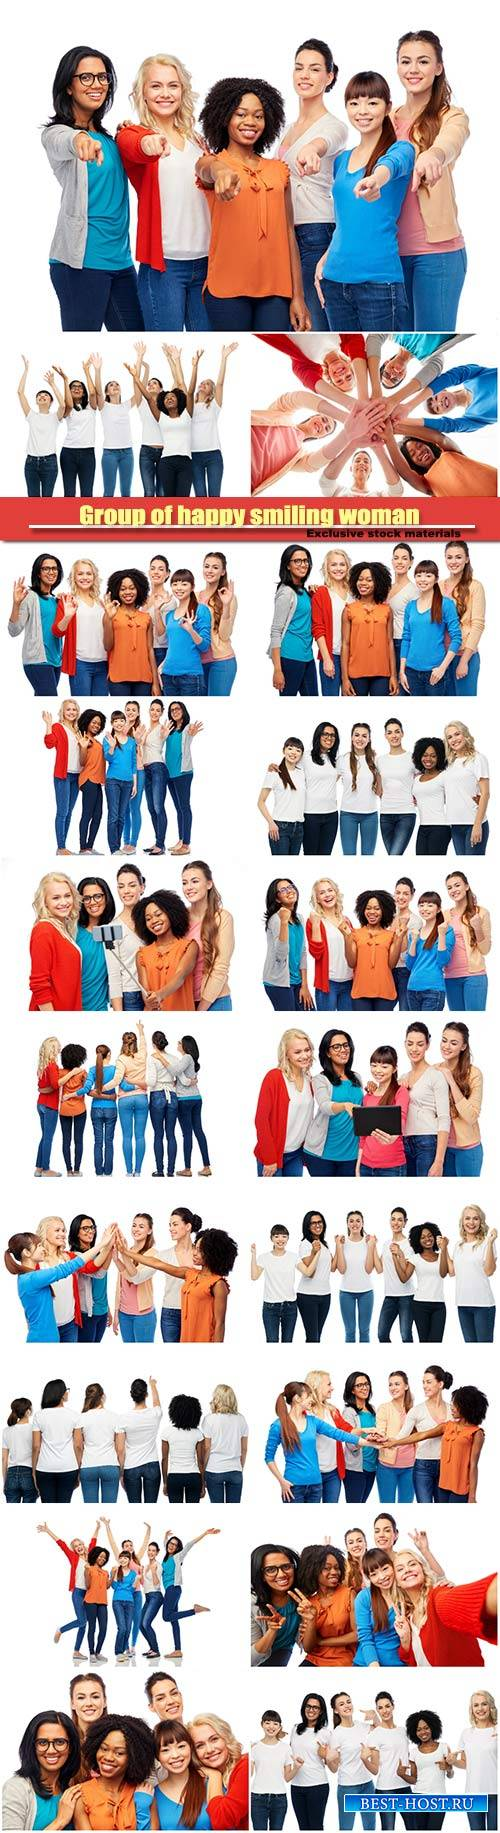 International group of happy smiling woman